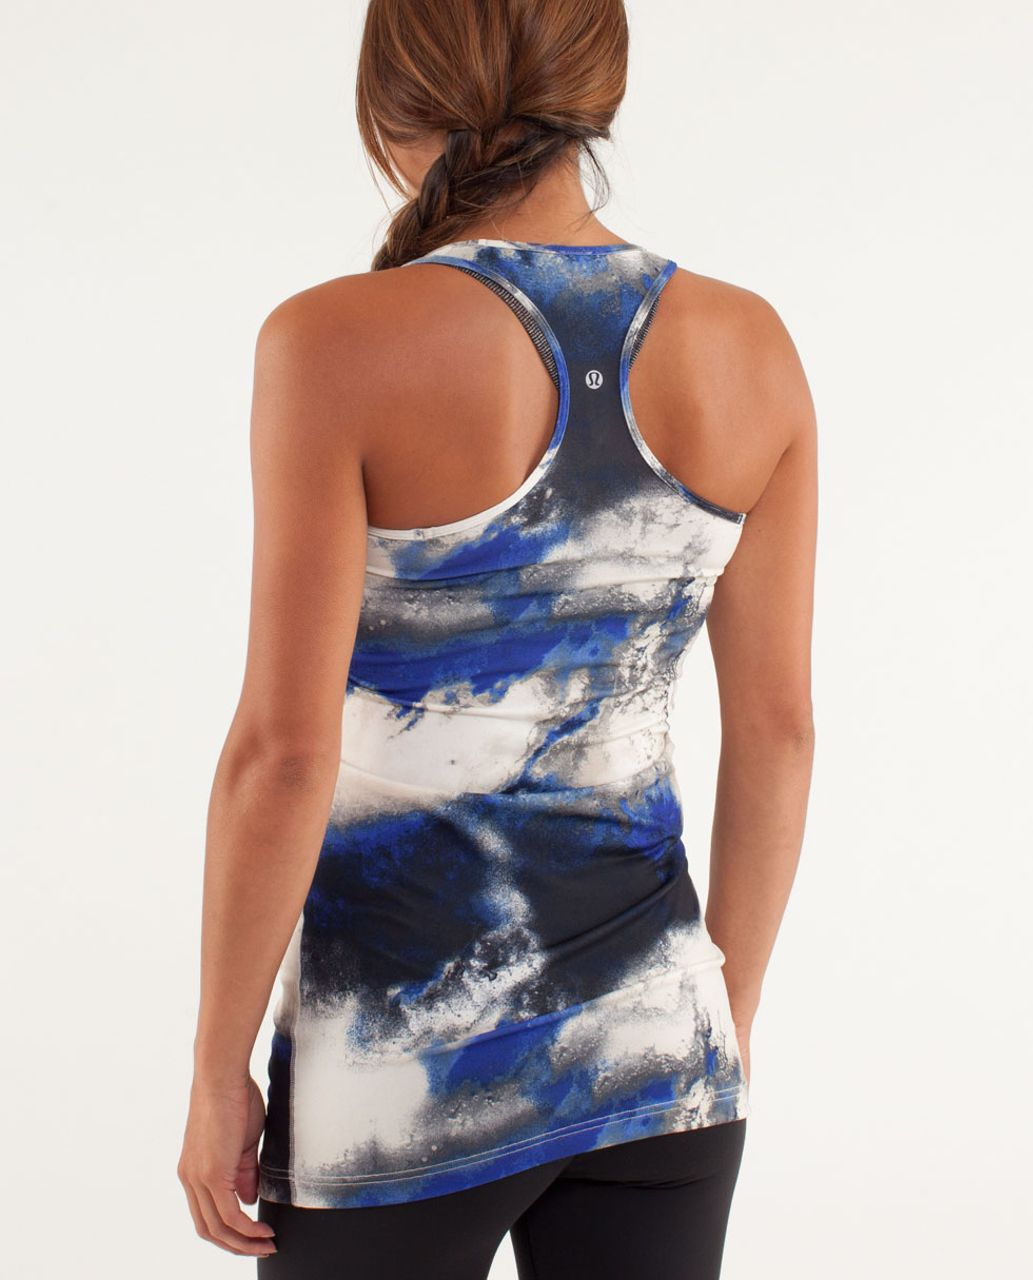 Lululemon Cool Racerback *Extra Long - Milky Way Multi